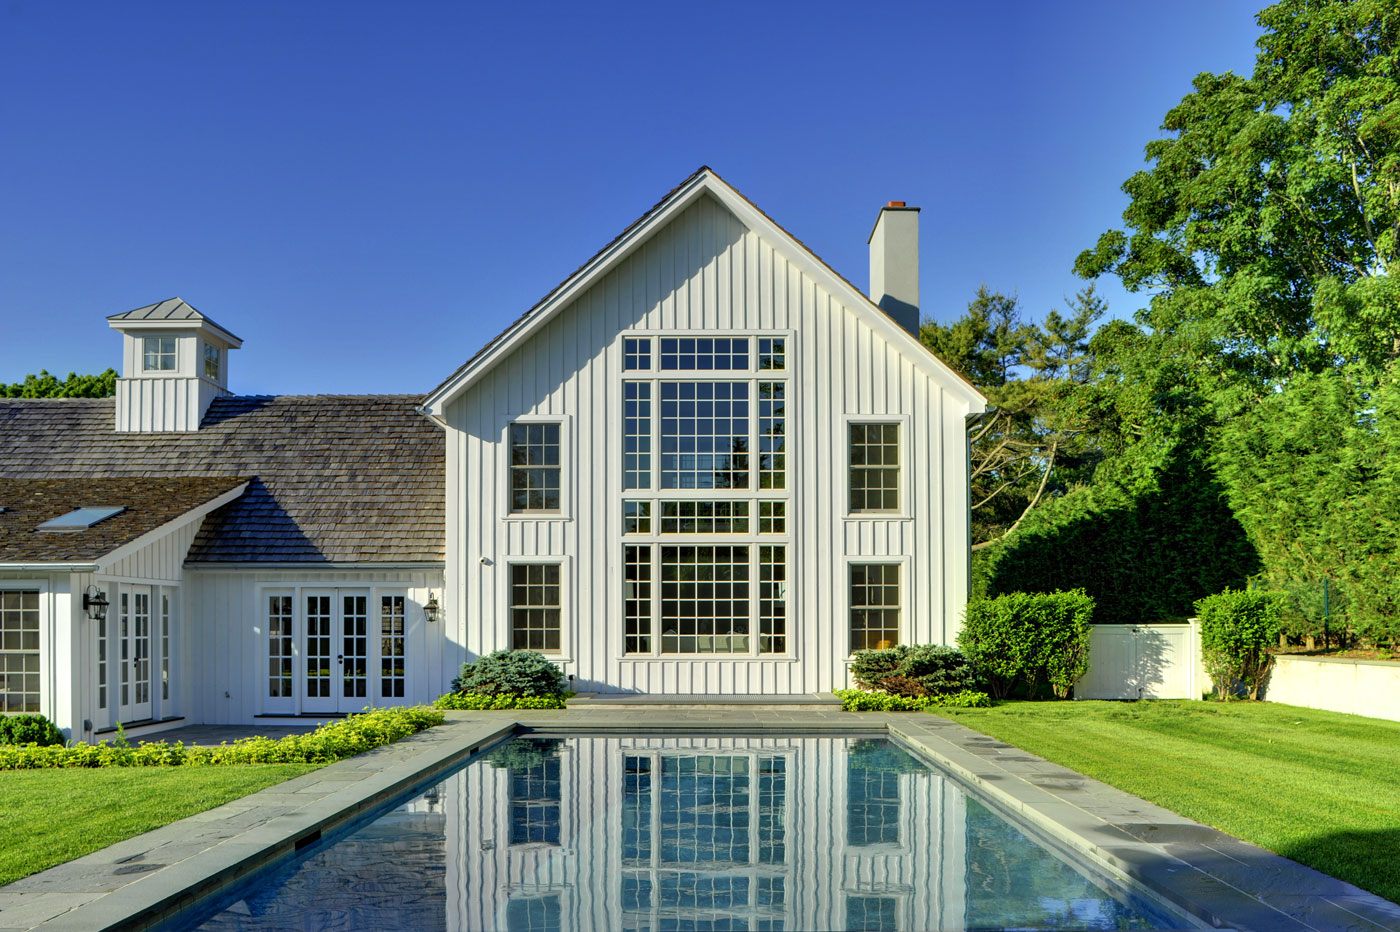 Yankee Barn Homes' Laurel Hollow Barn Home